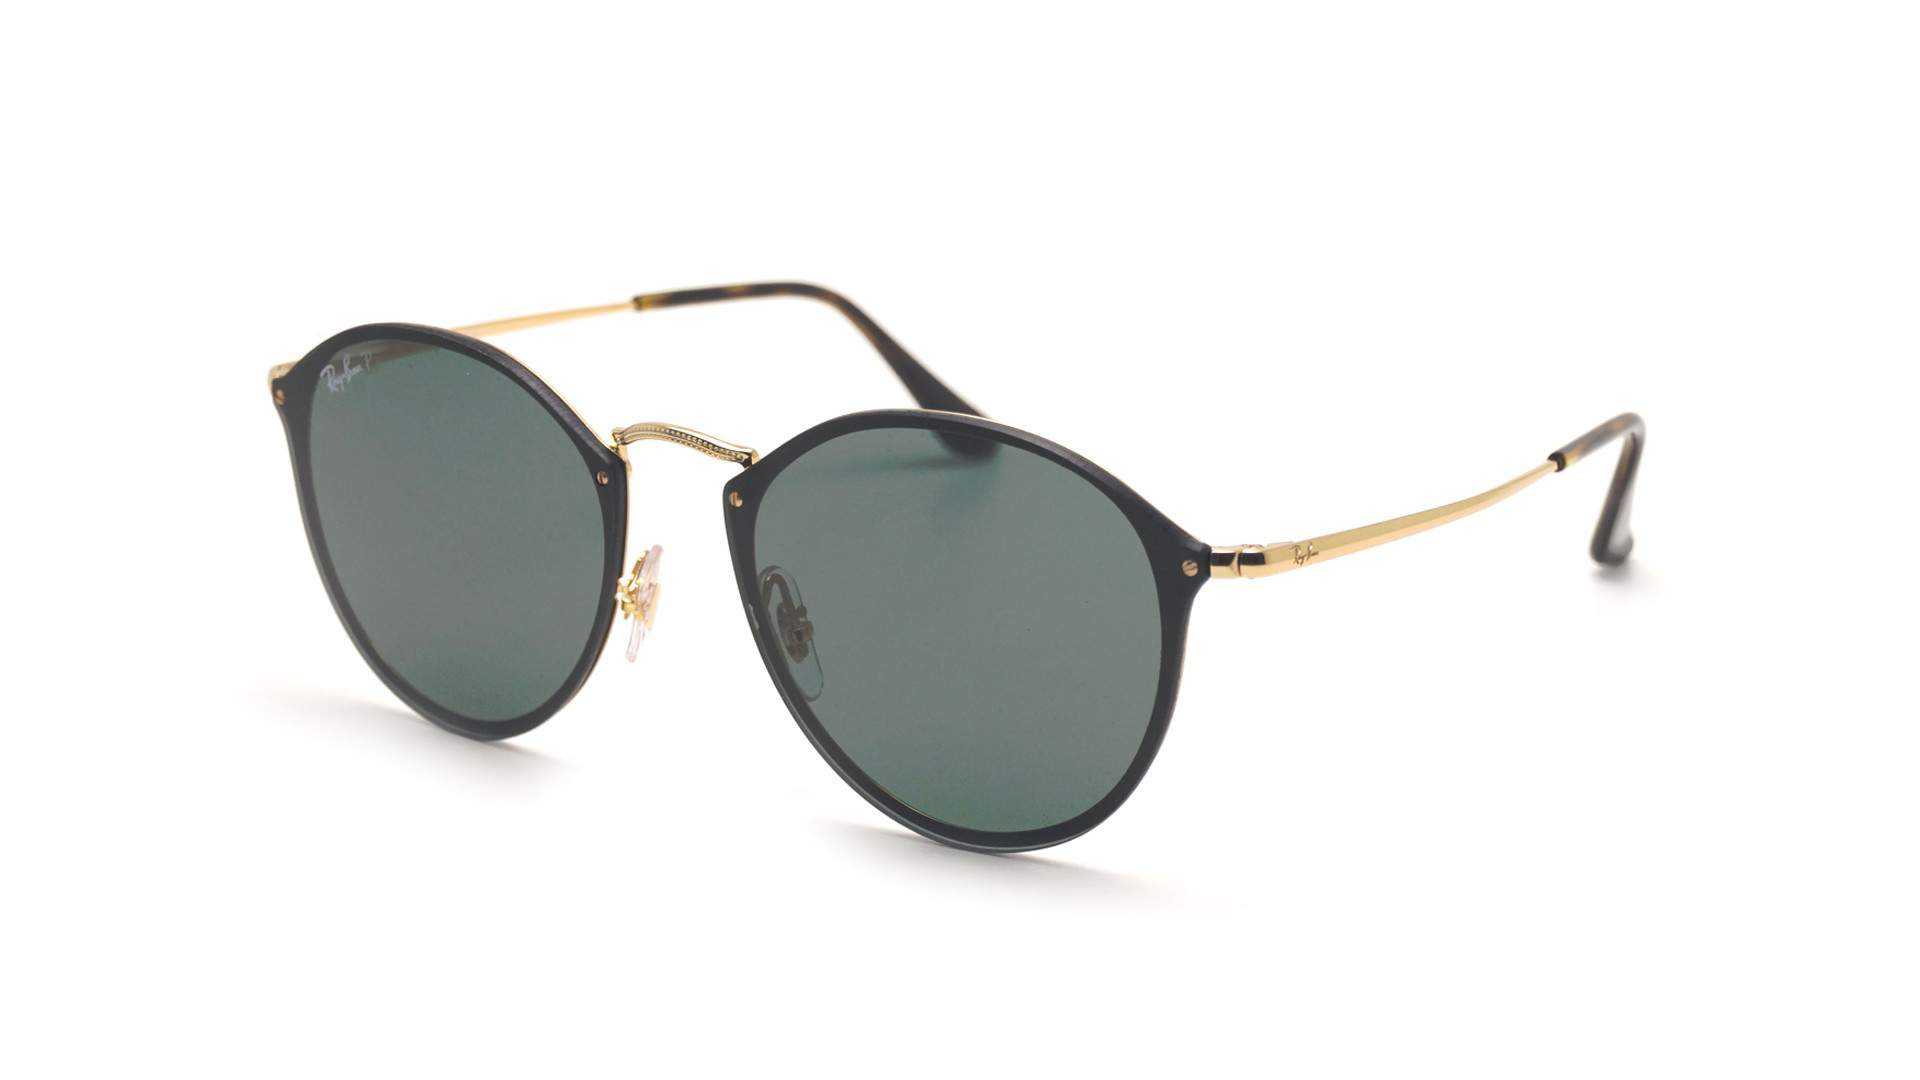 Sunglasses Ray-Ban Round Blaze Gold RB3574N 001 9A 59-14 Large Polarized c2cf23e4c0